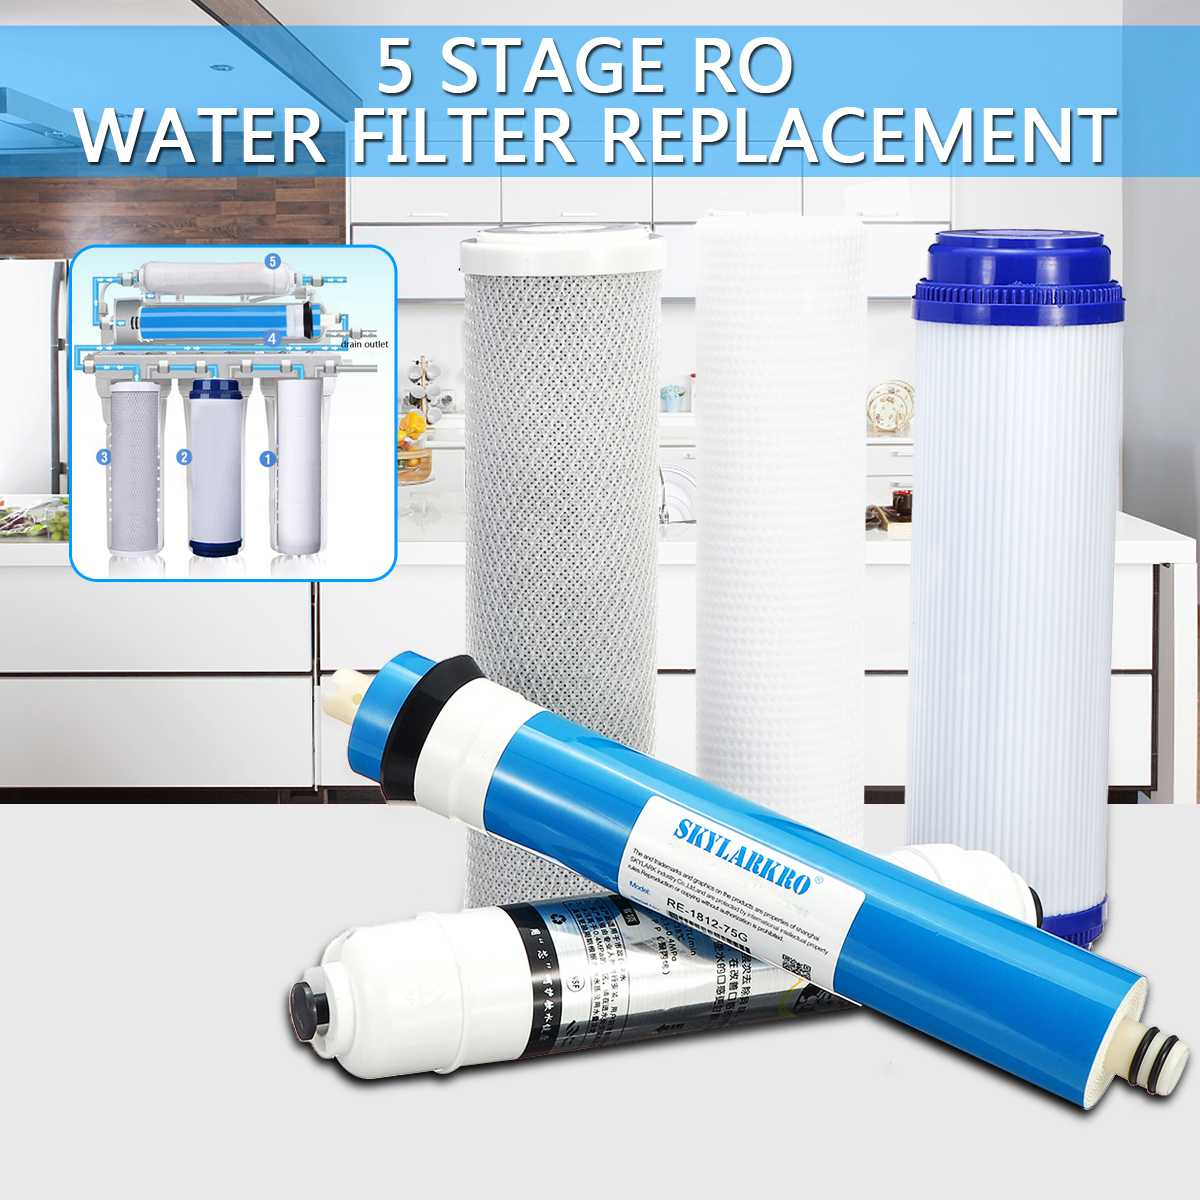 REVERSE OSMOSIS RO REPLACEMENT WATER FILTERS FOR 5 STAGE SYSTEMS 75 GPD MEMBRANE